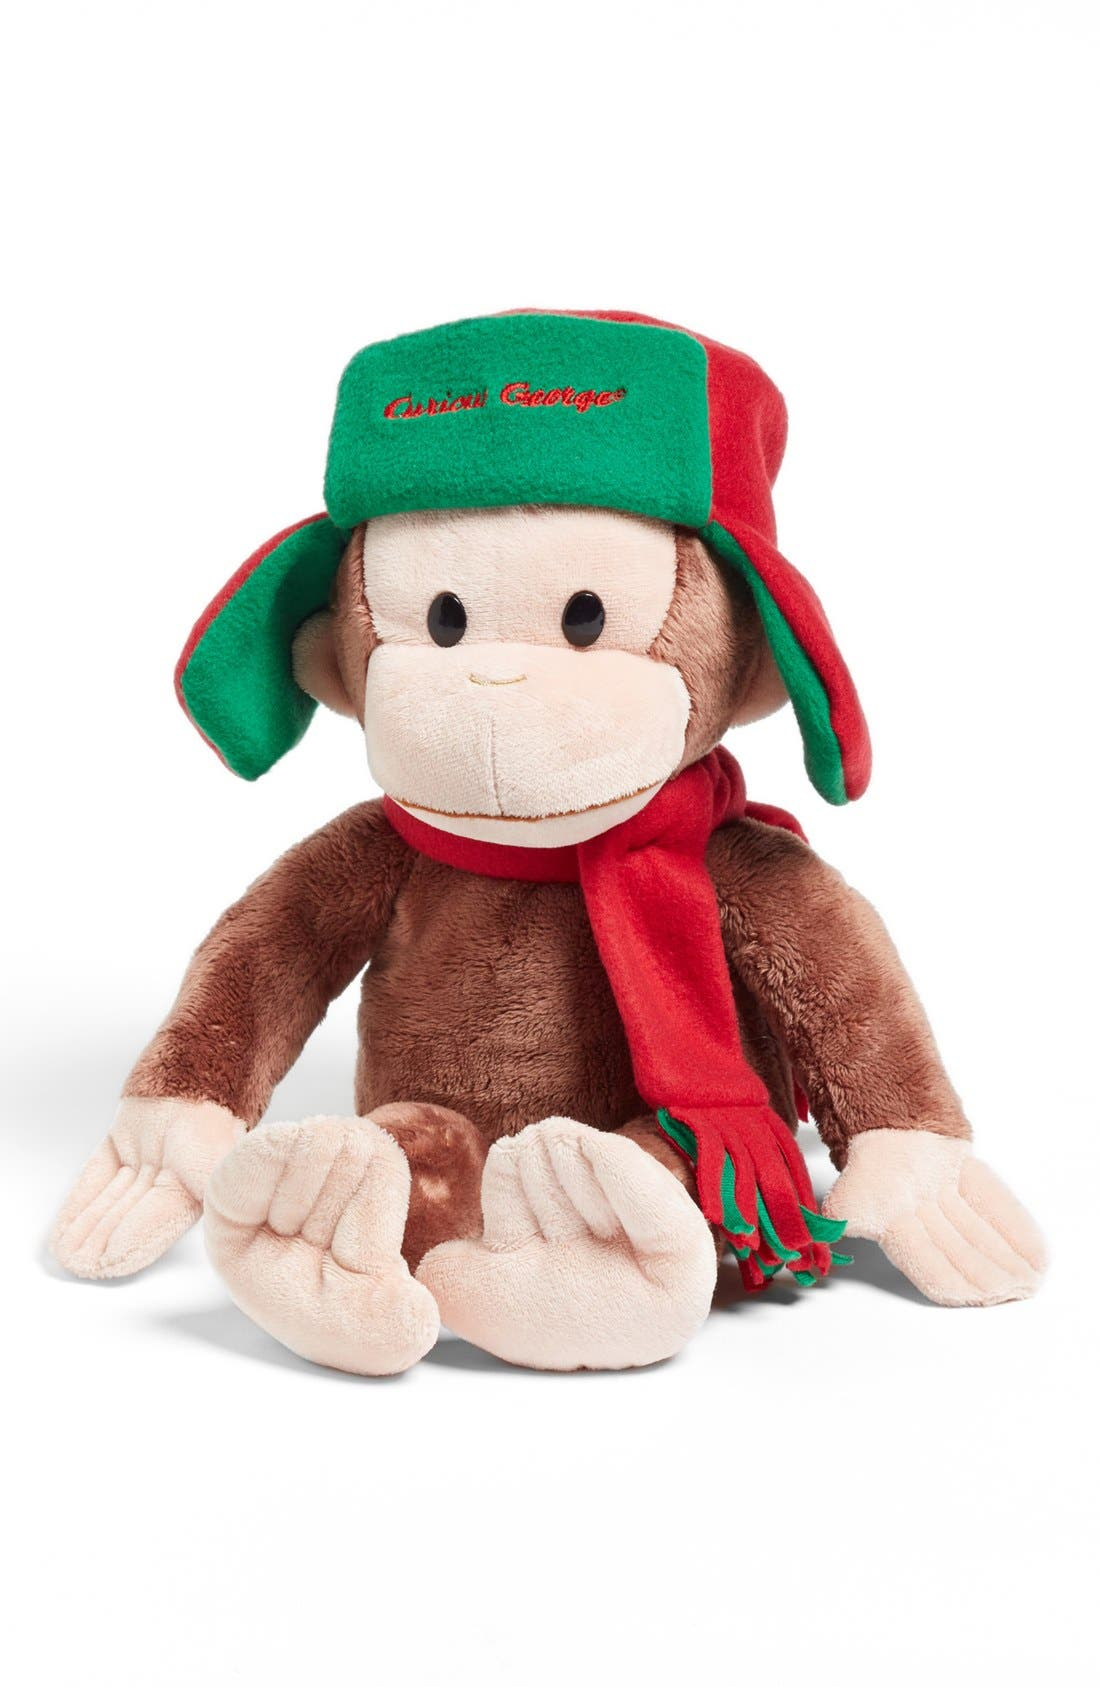 Alternate Image 1 Selected - Gund 'Curious George™ Trapper' Stuffed Animal